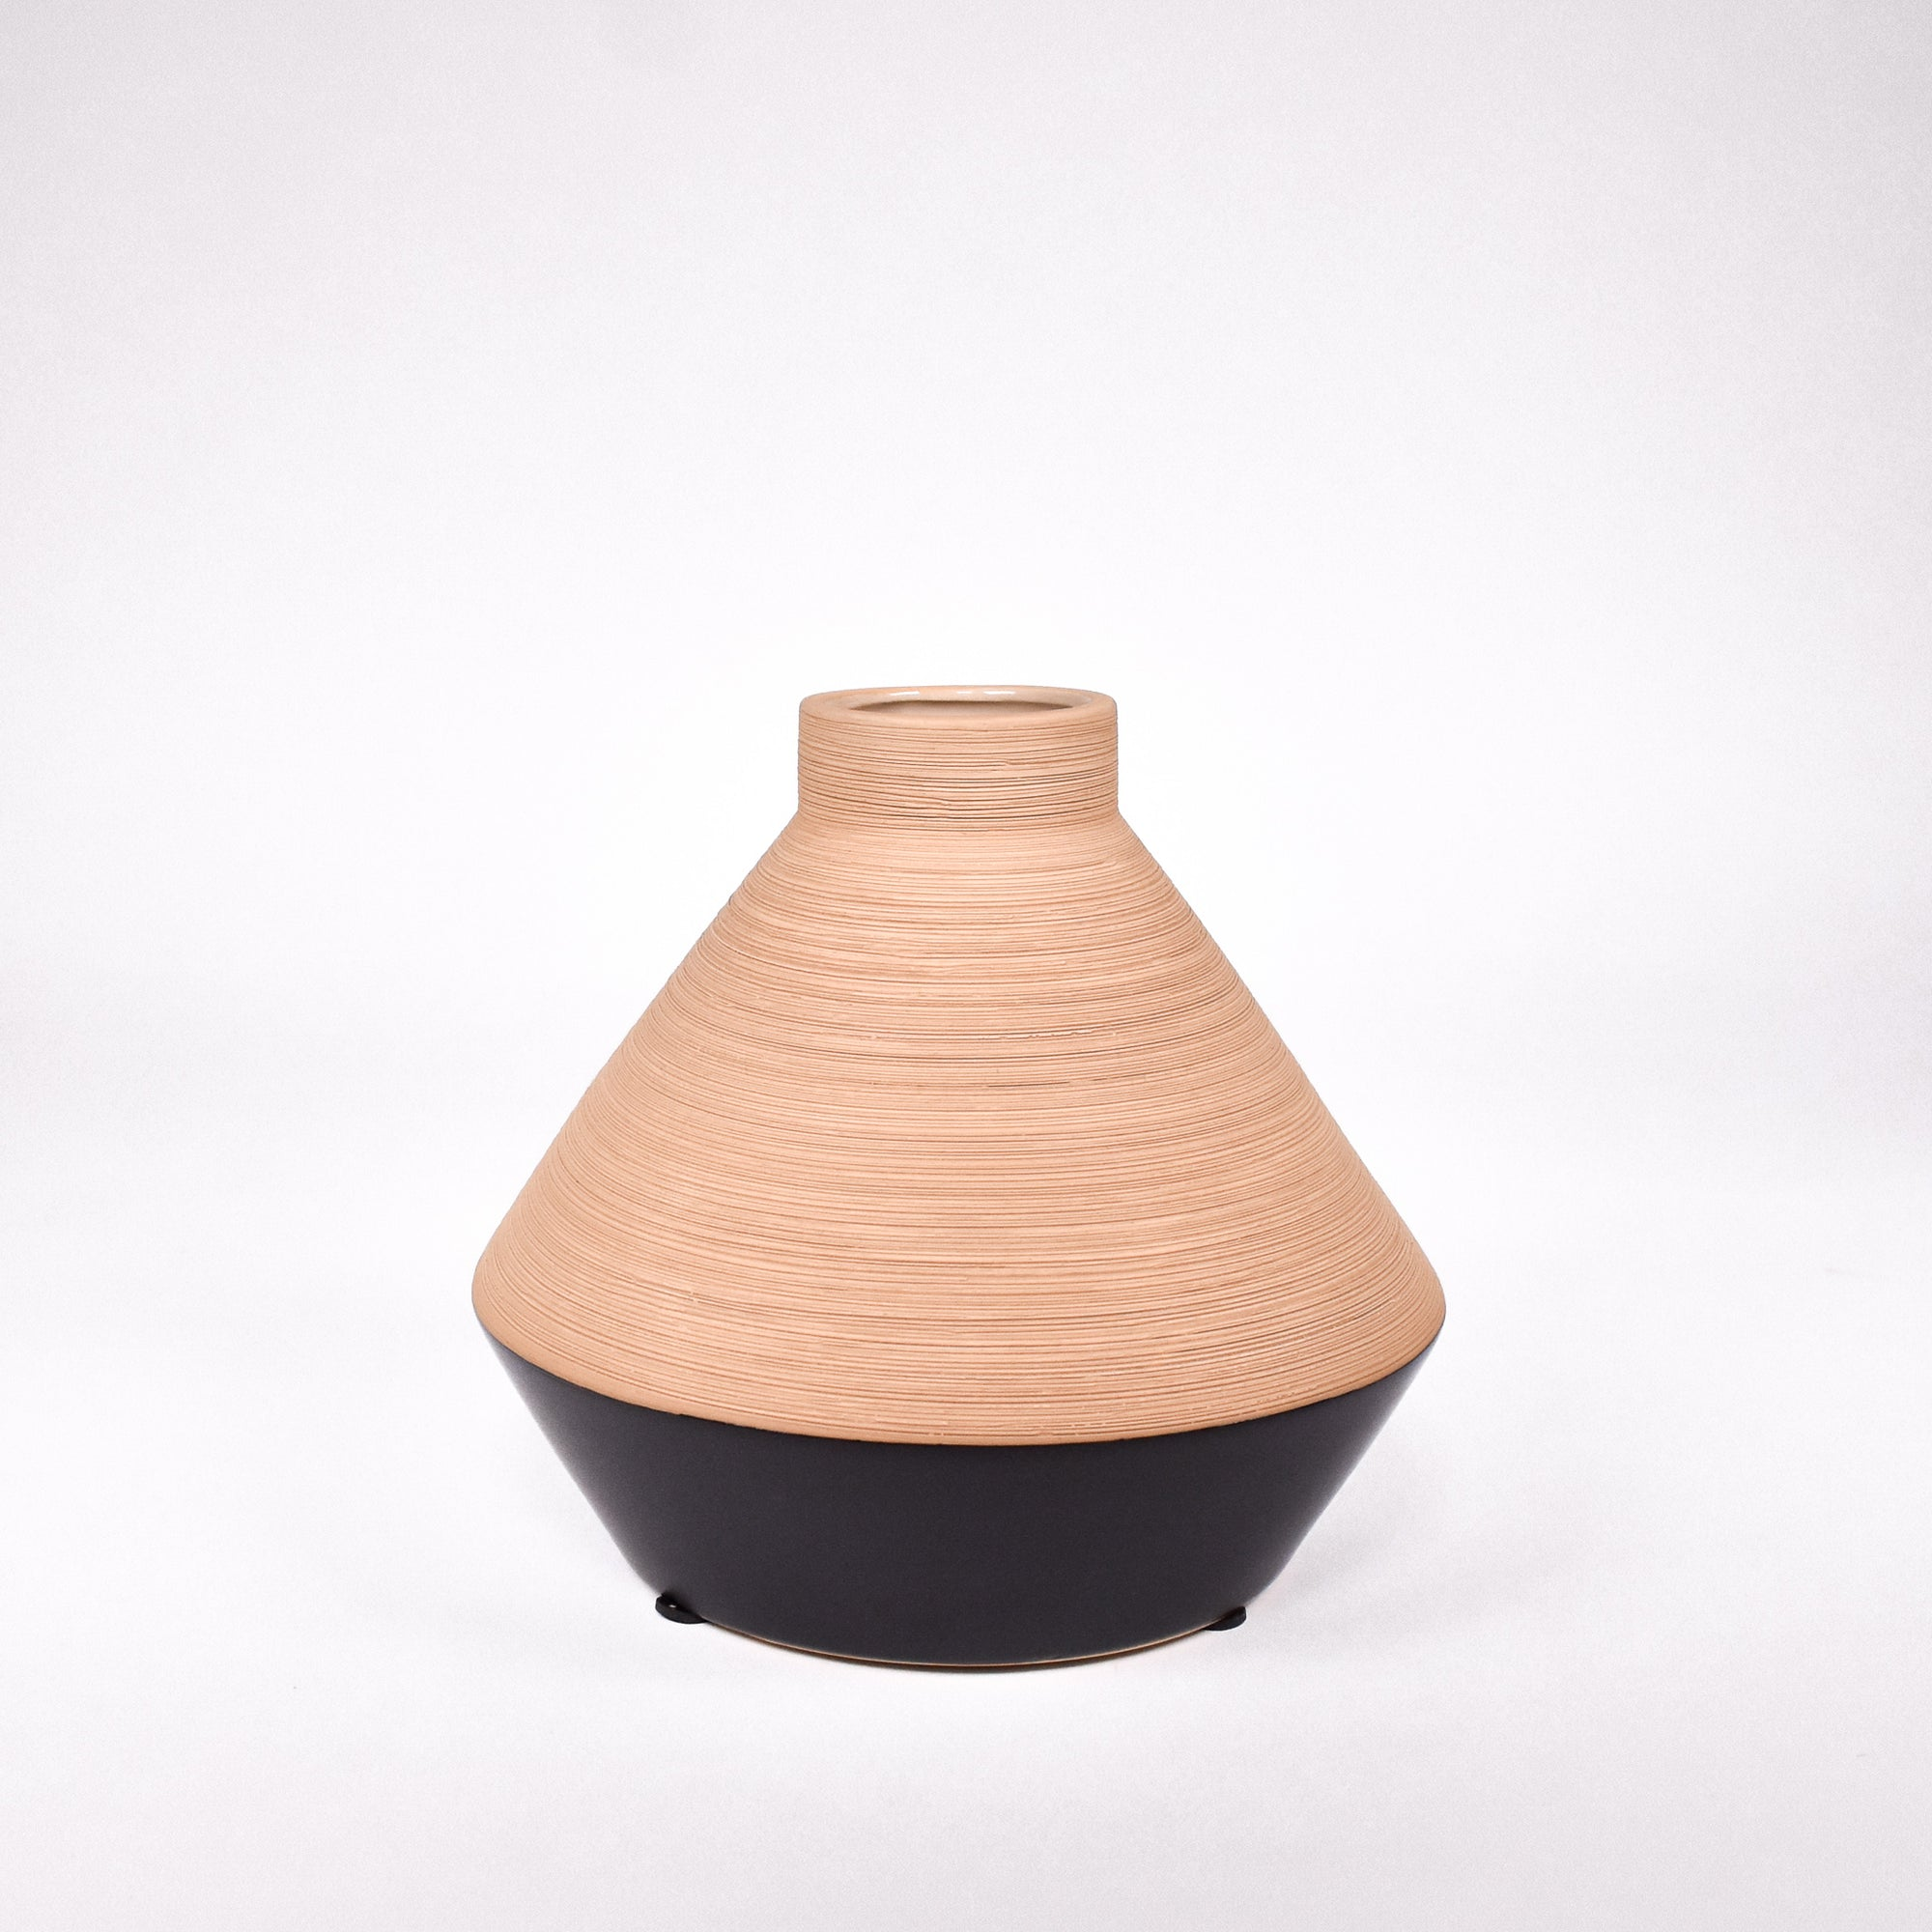 Sand and Black Vase - Rug & Weave